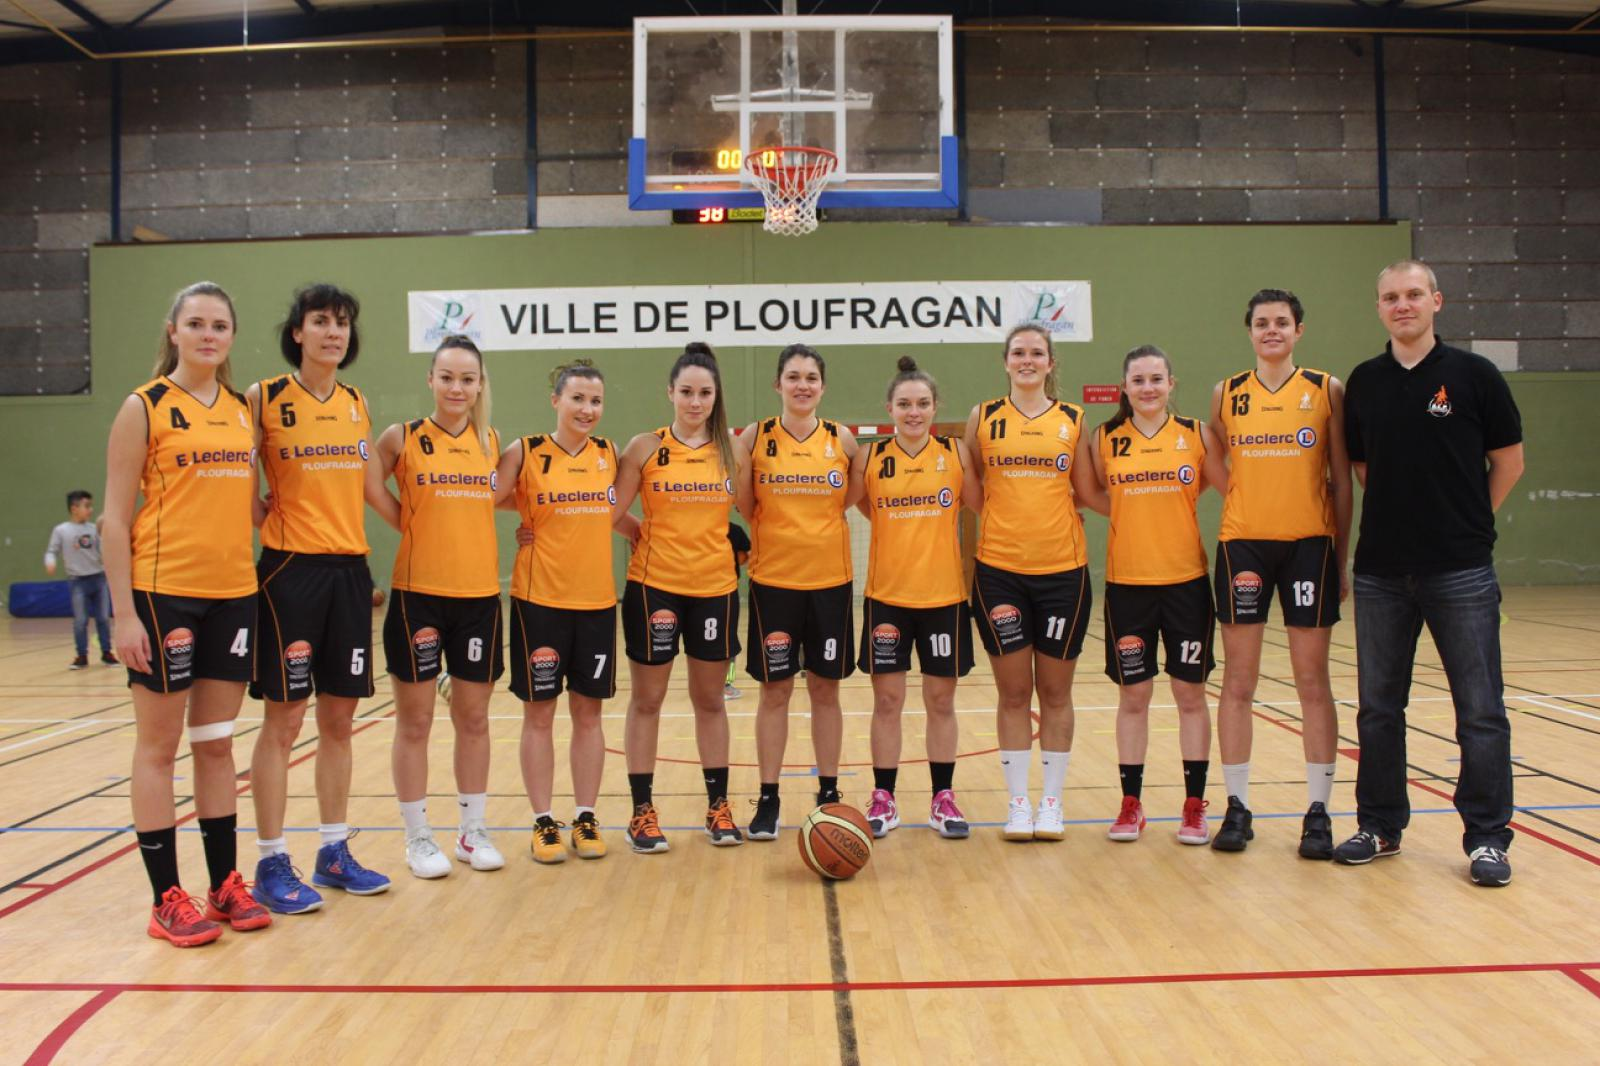 SENIORS FEMININES 1 - AL PLOUFRAGAN BASKET-BALL